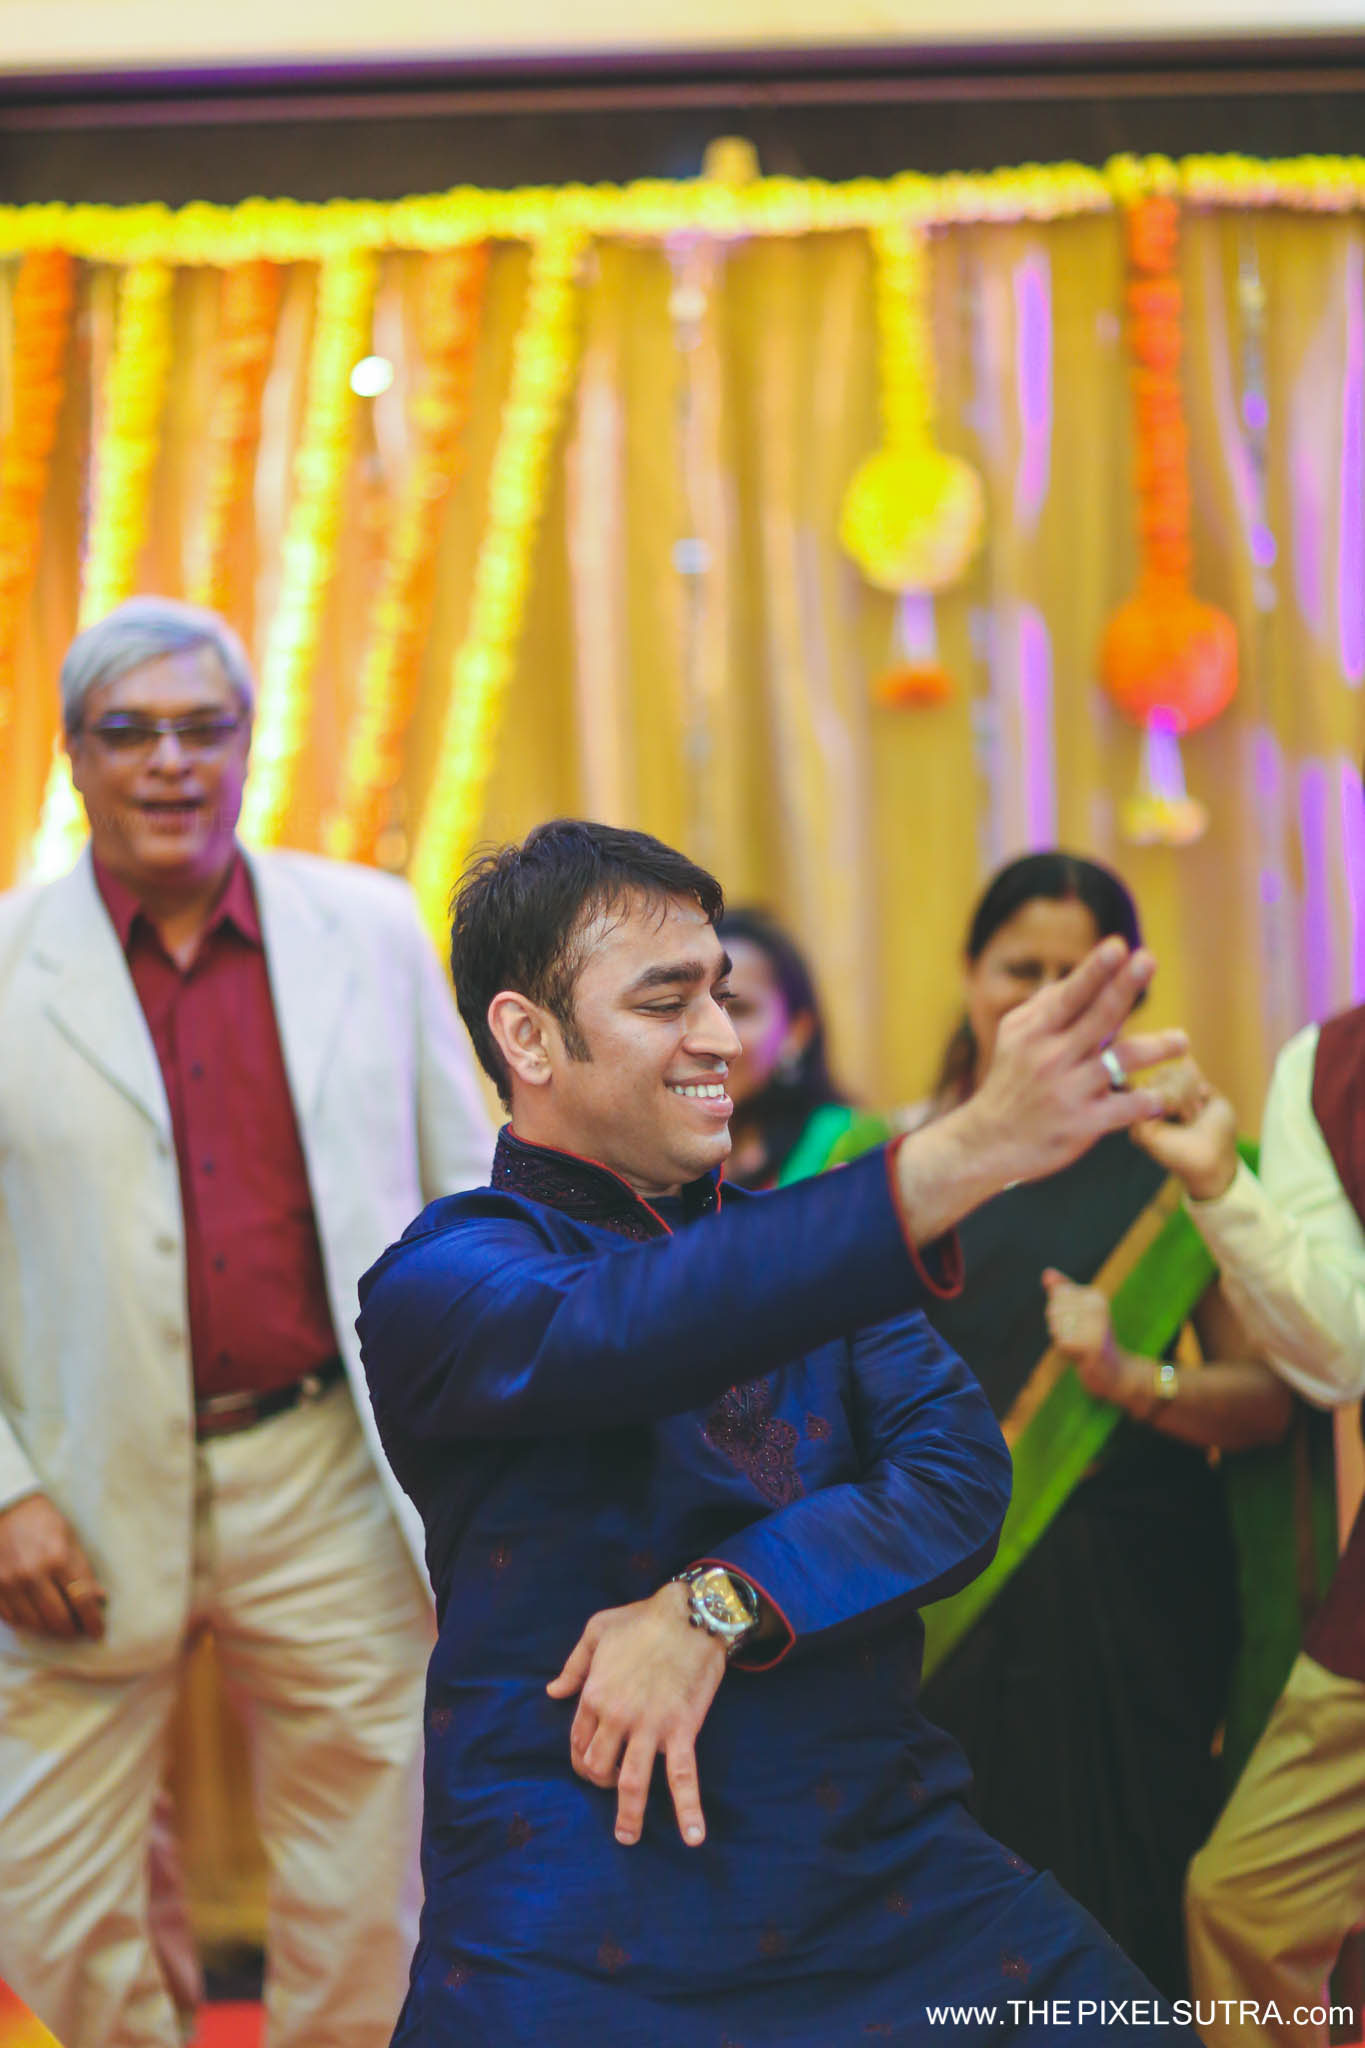 The Pixel Sutra Nachiket x Priyanka Candid Wedding photographer Mumbai Best  (11).jpg